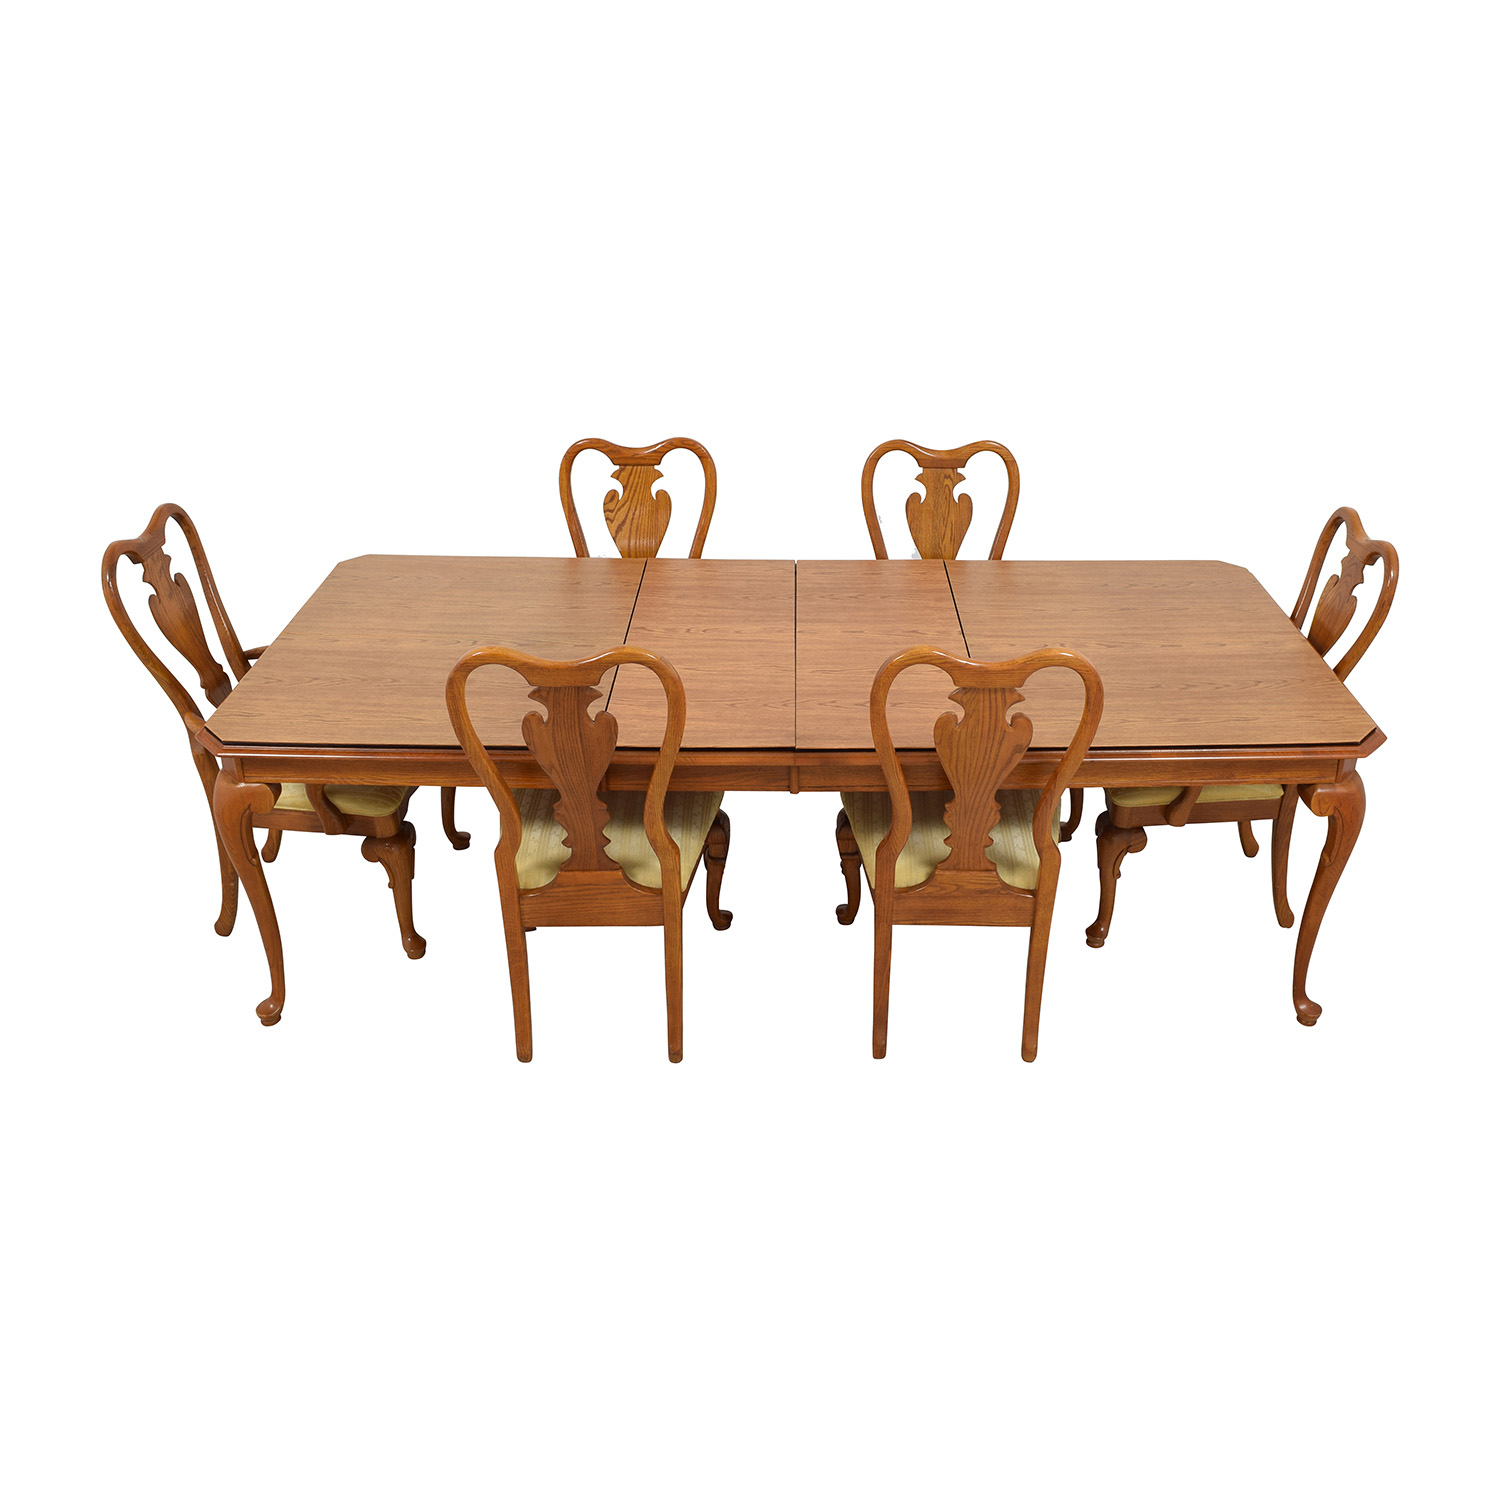 Second Hand Wood Sala Set 85 Off Classic Six Piece Wooden Dining Set Tables